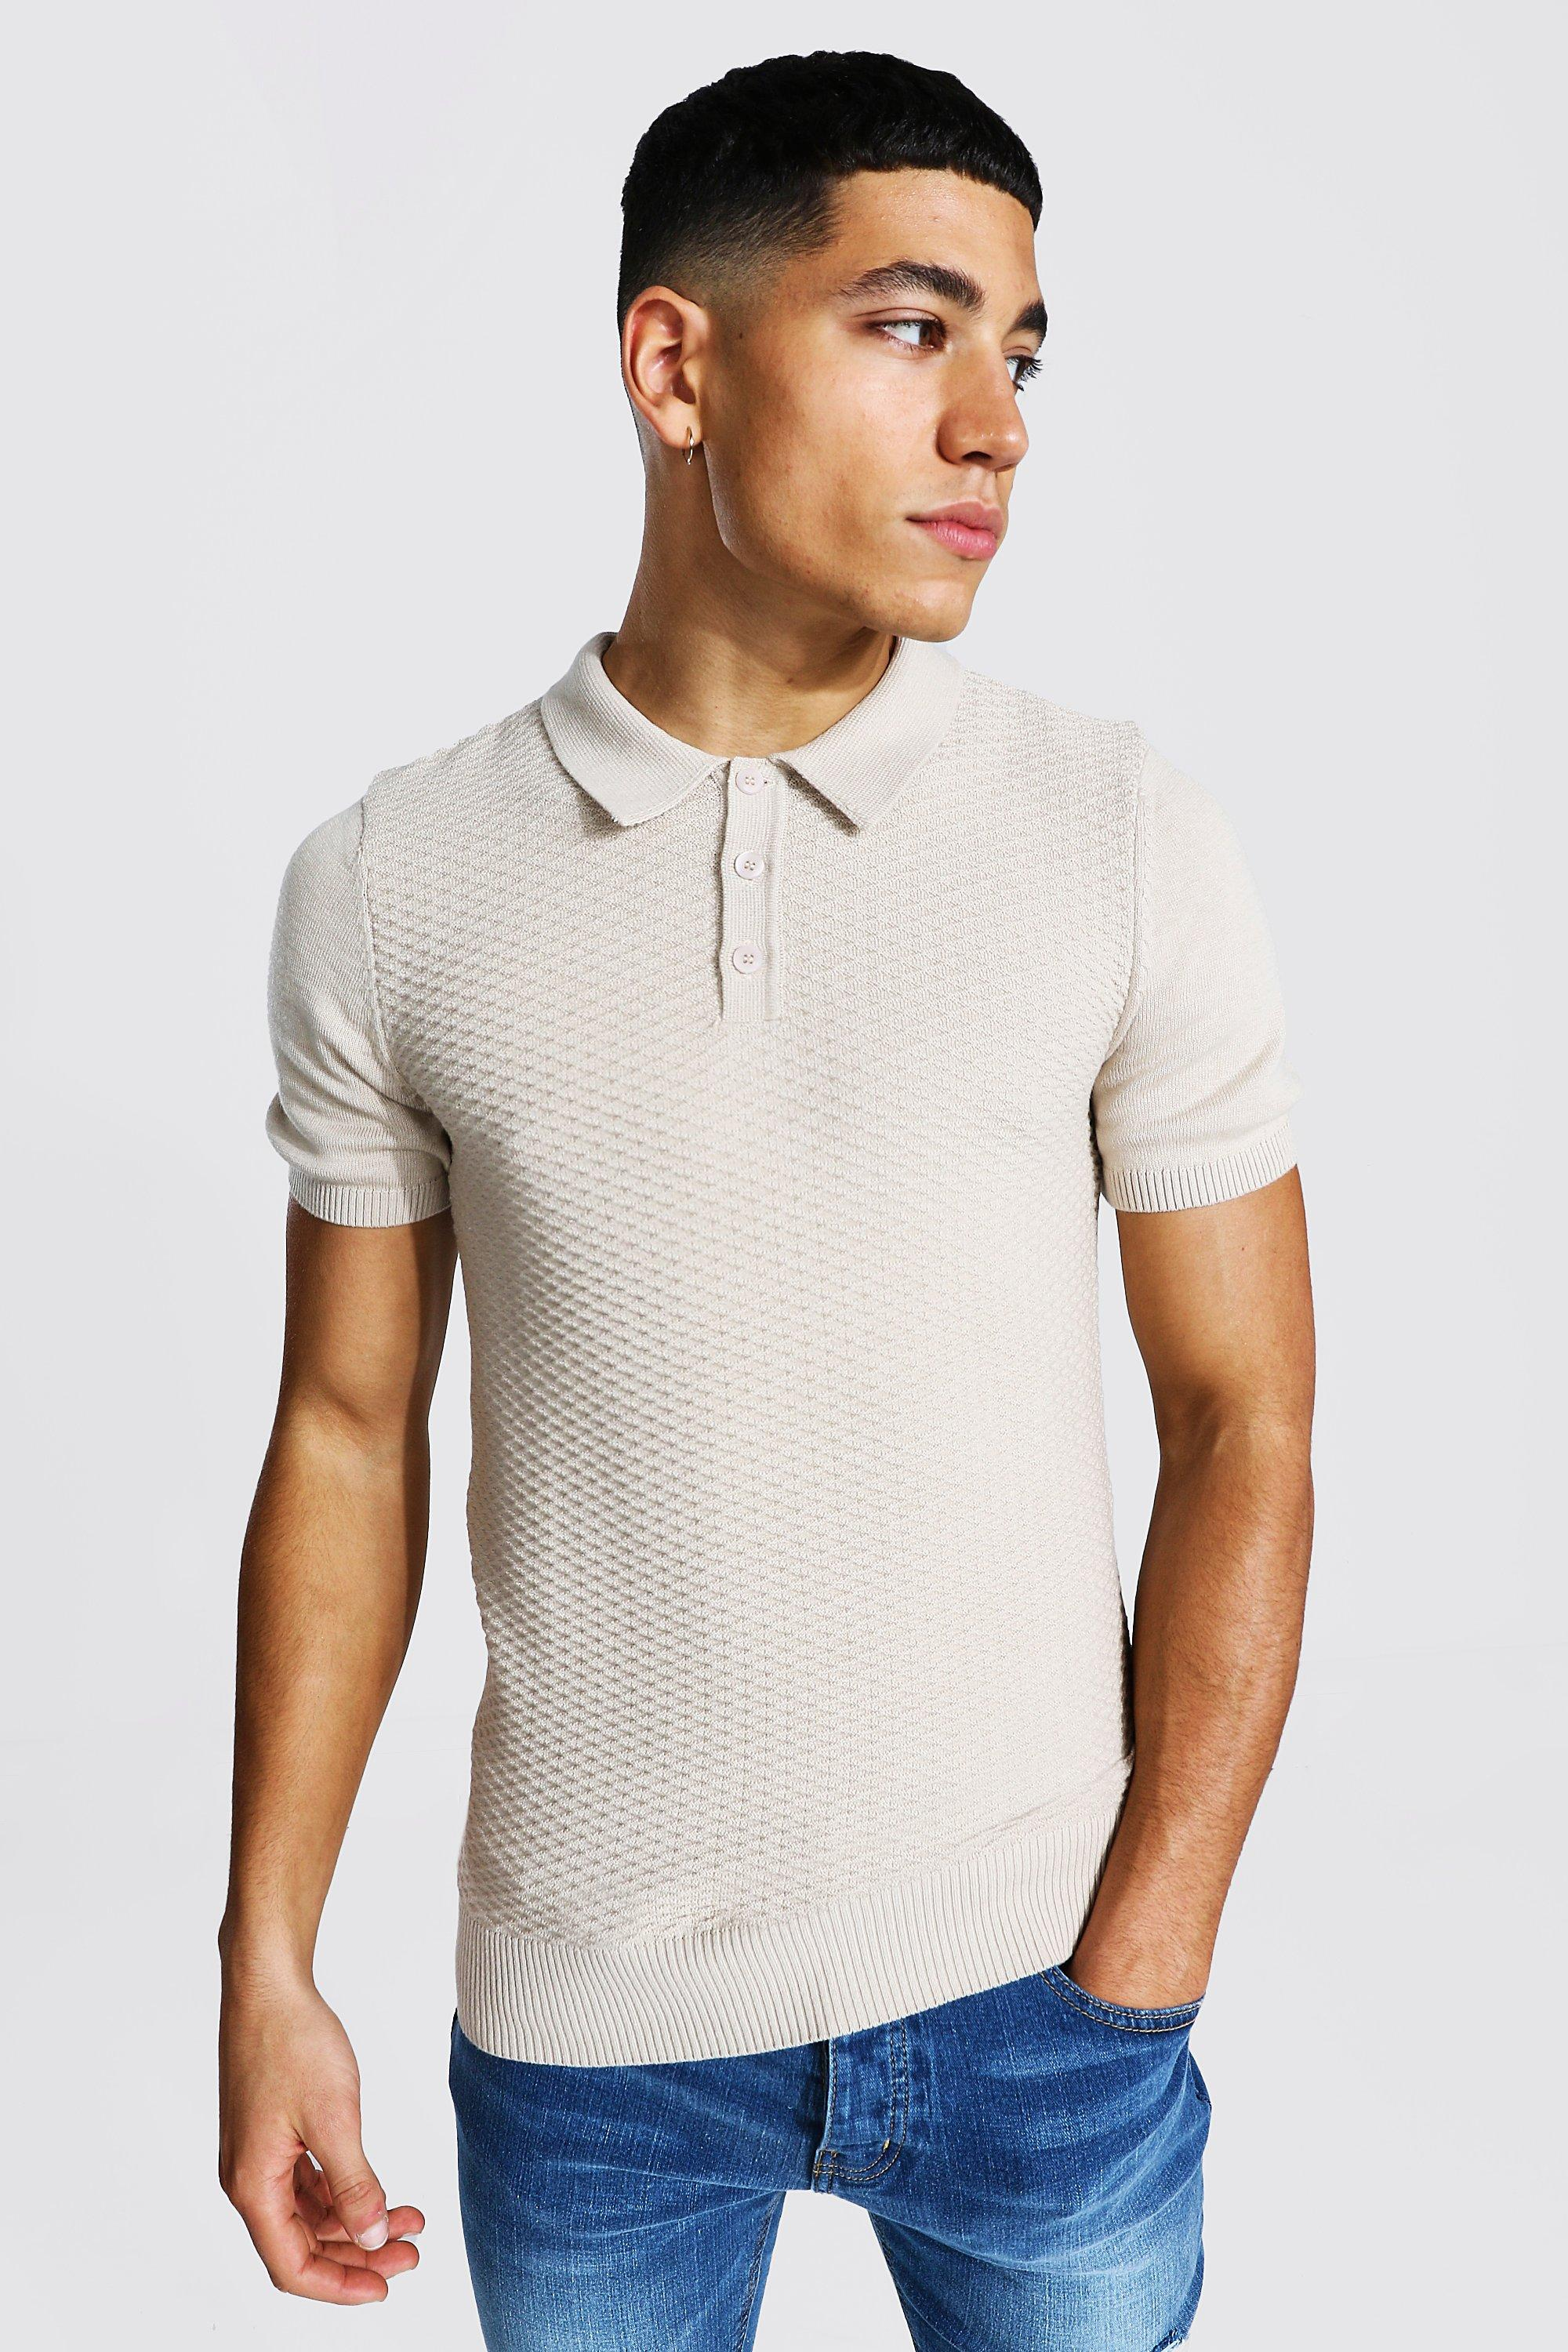 1930s Men's Fashion Guide- What Did Men Wear? Mens Short Sleeve Muscle Fit Textured Knitted Polo - Beige $19.20 AT vintagedancer.com